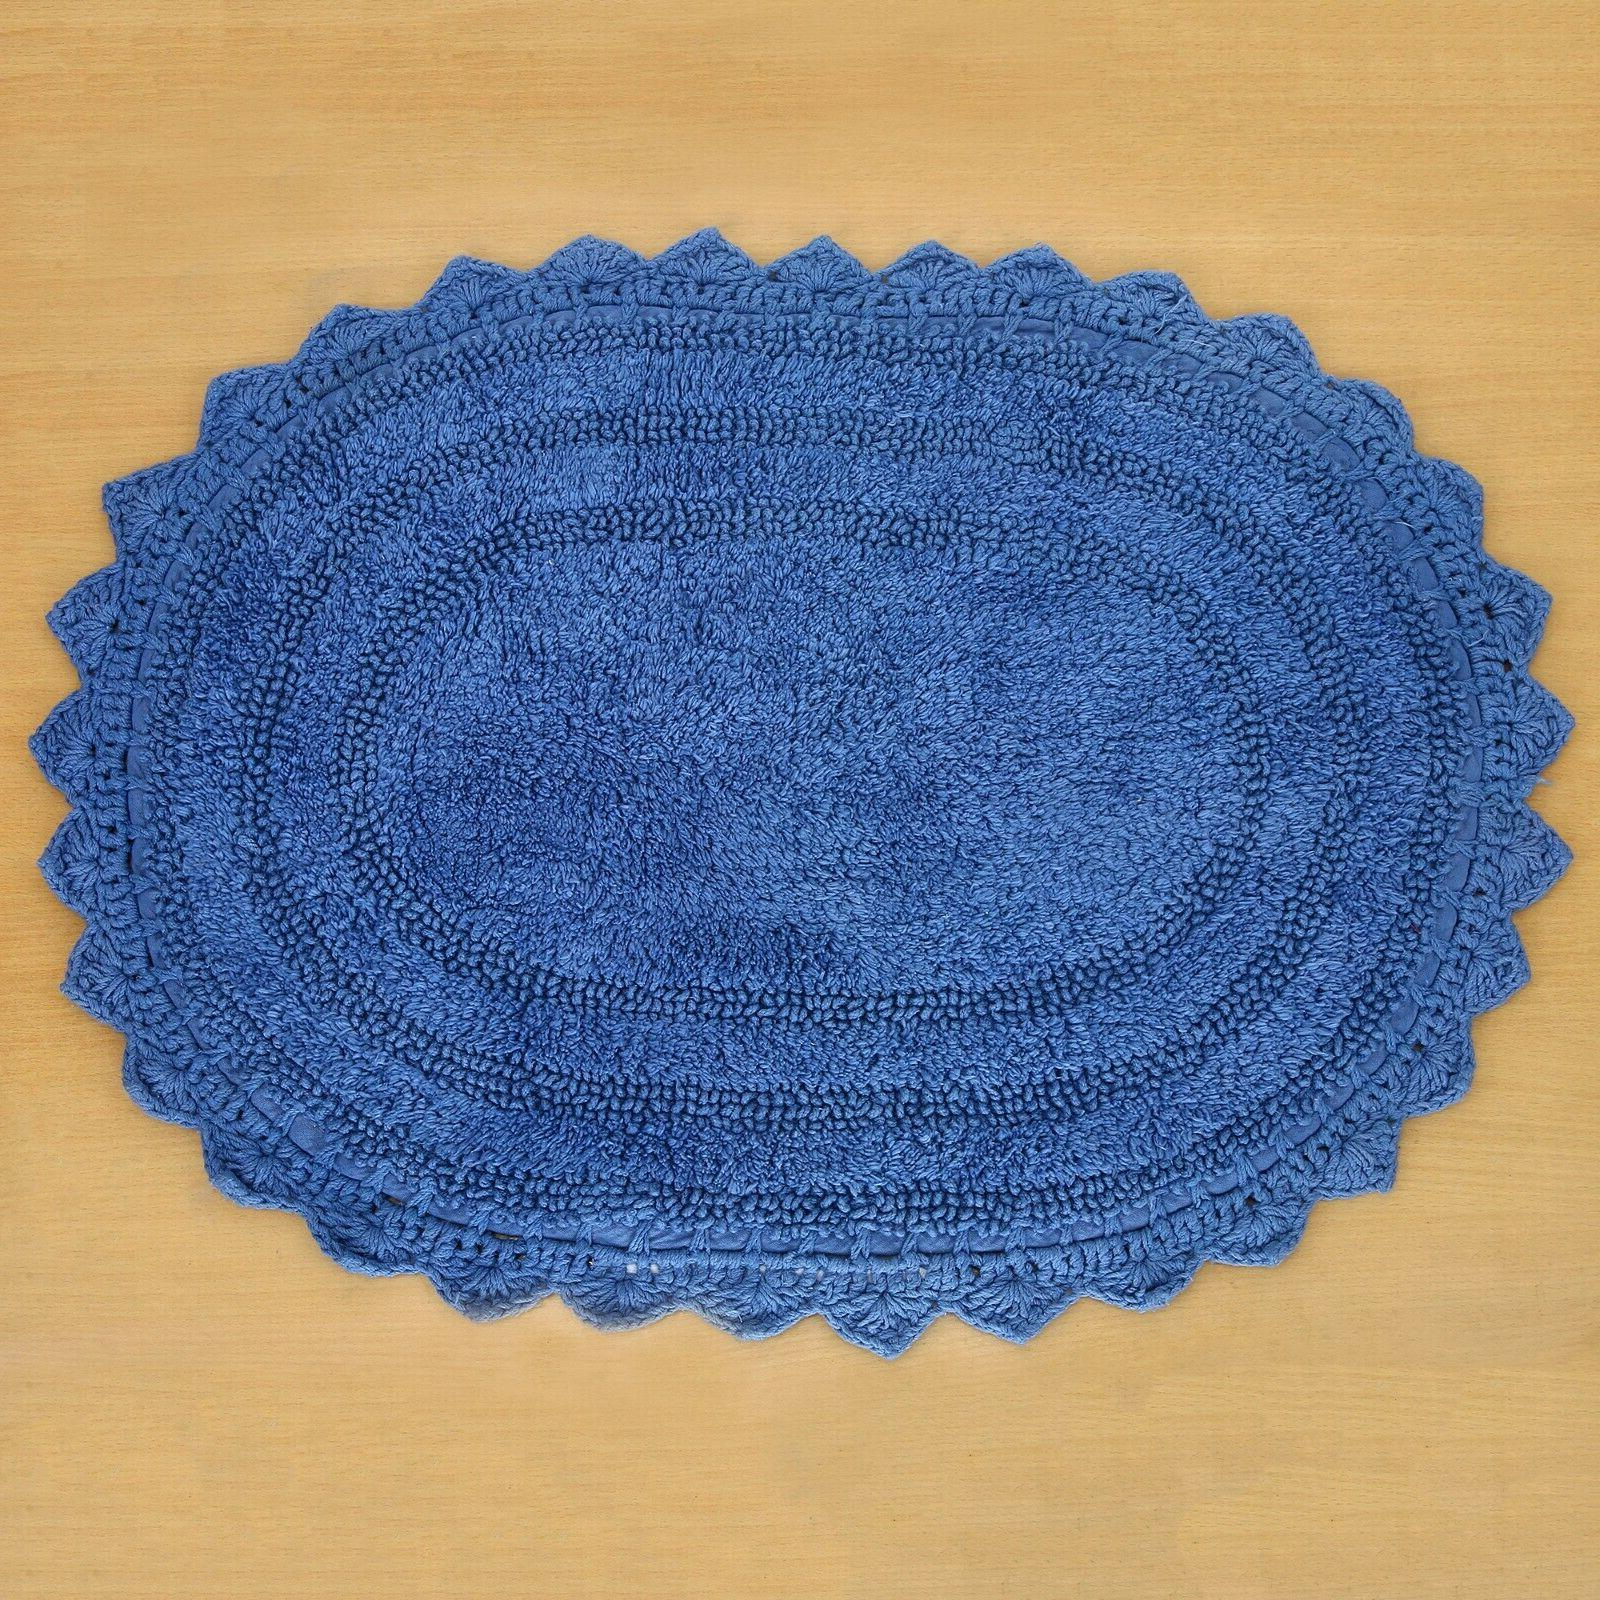 Cotton Bath Mat 17X24 Inches Shape Ocean